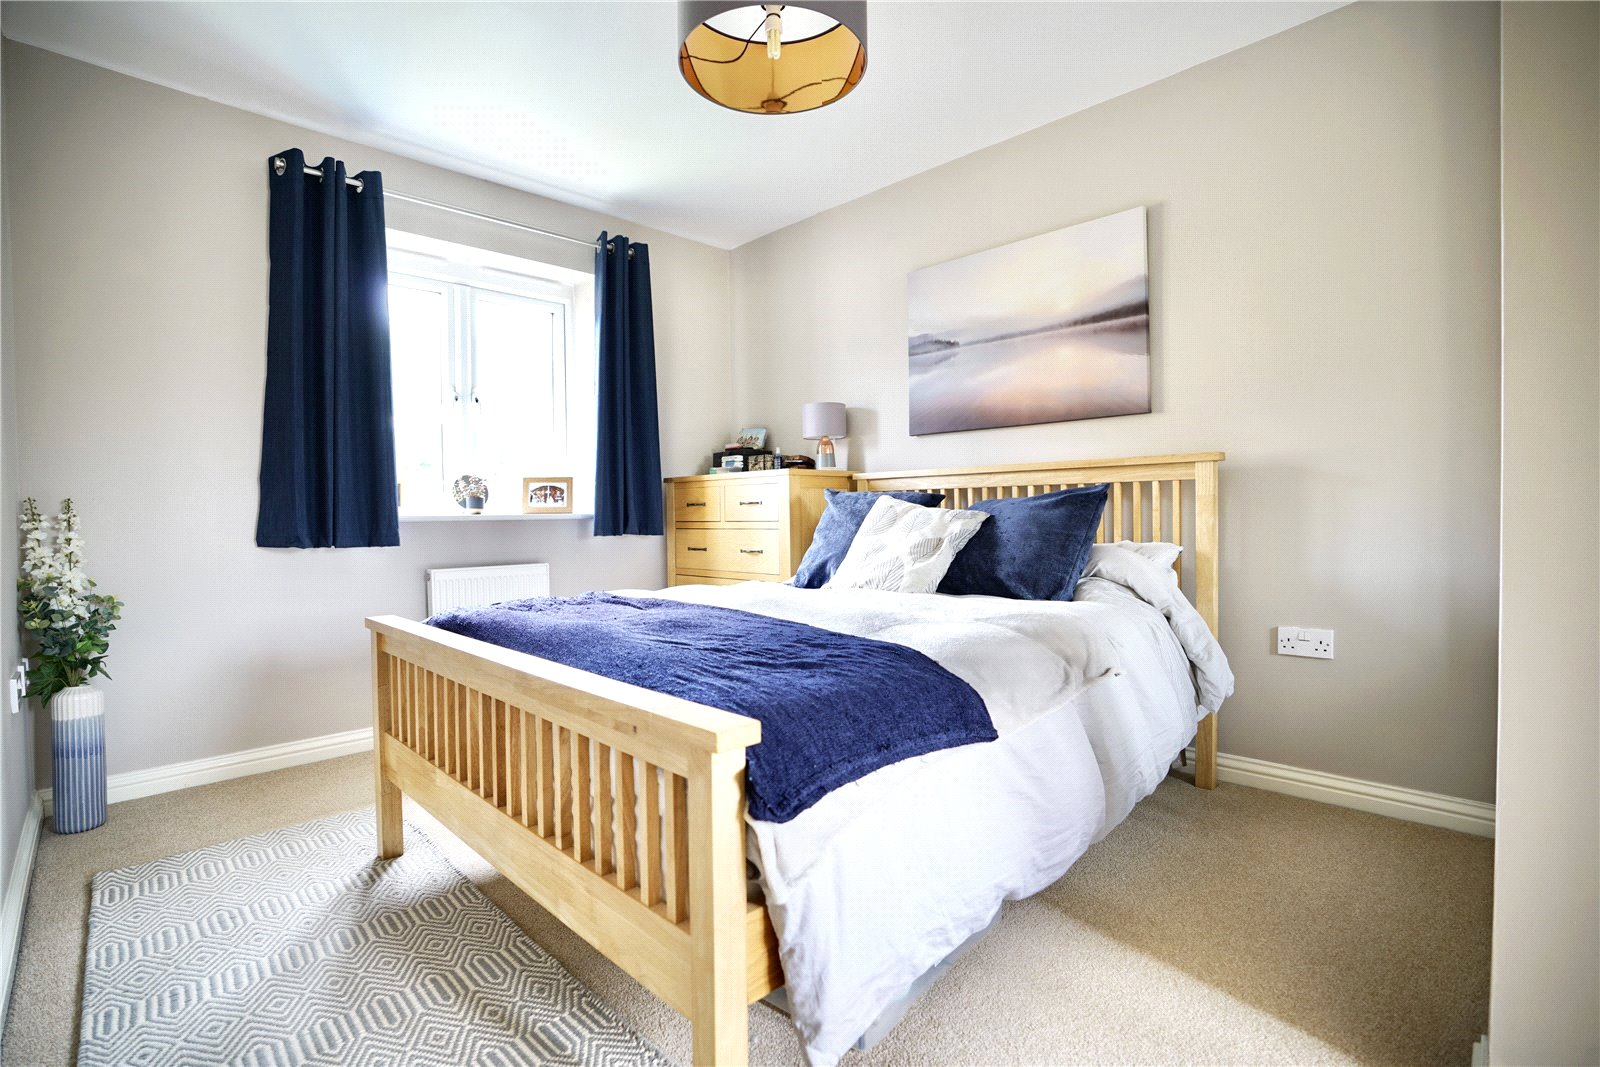 3 bed house for sale in St. Ives, PE27 5DL 5